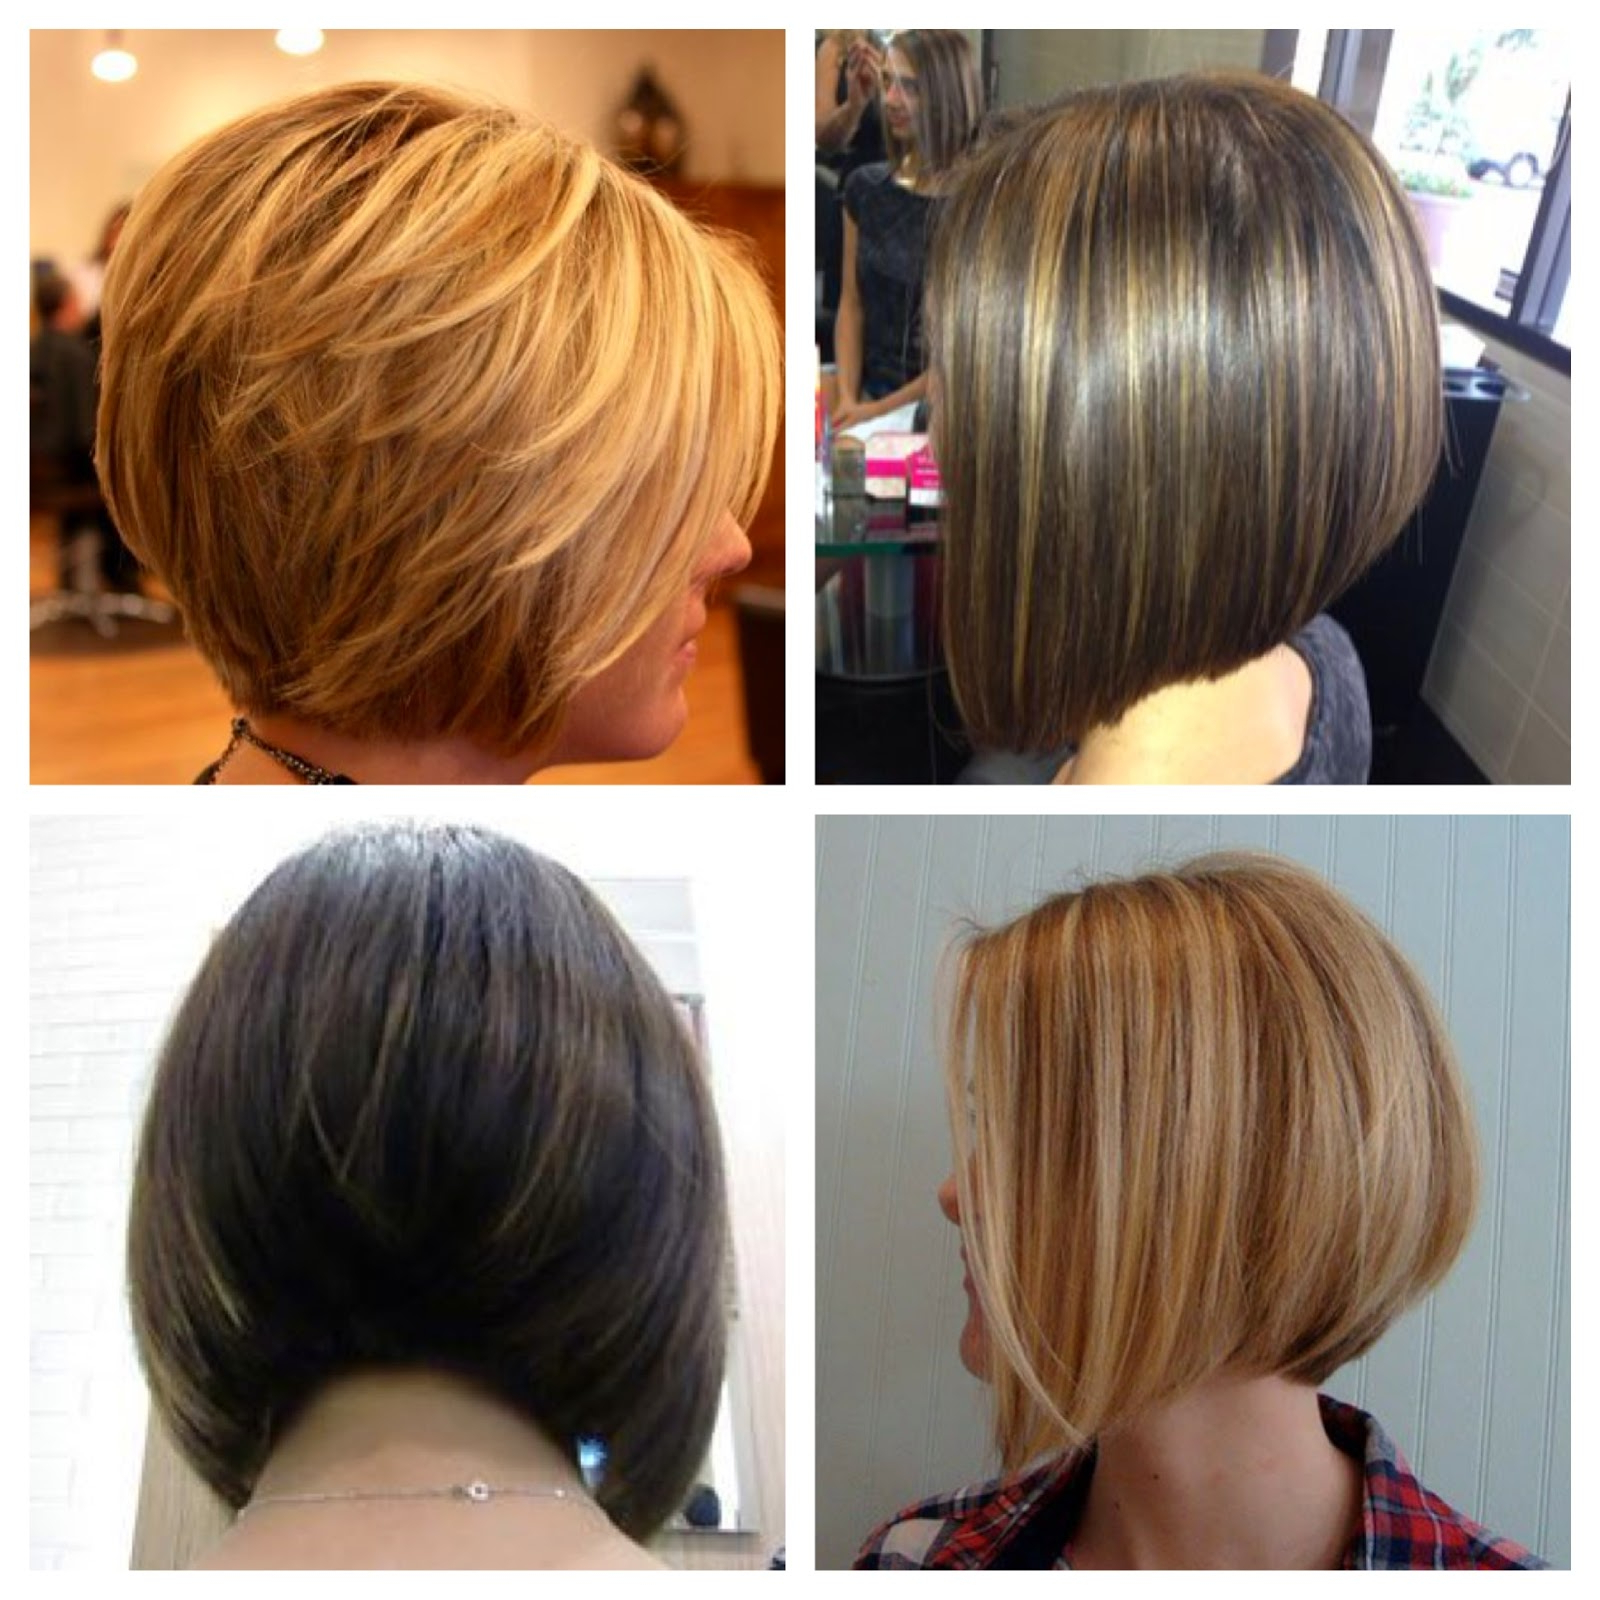 Longer Inverted Bob Haircut For Short Bob Hairstyles With Tapered Back (View 10 of 20)